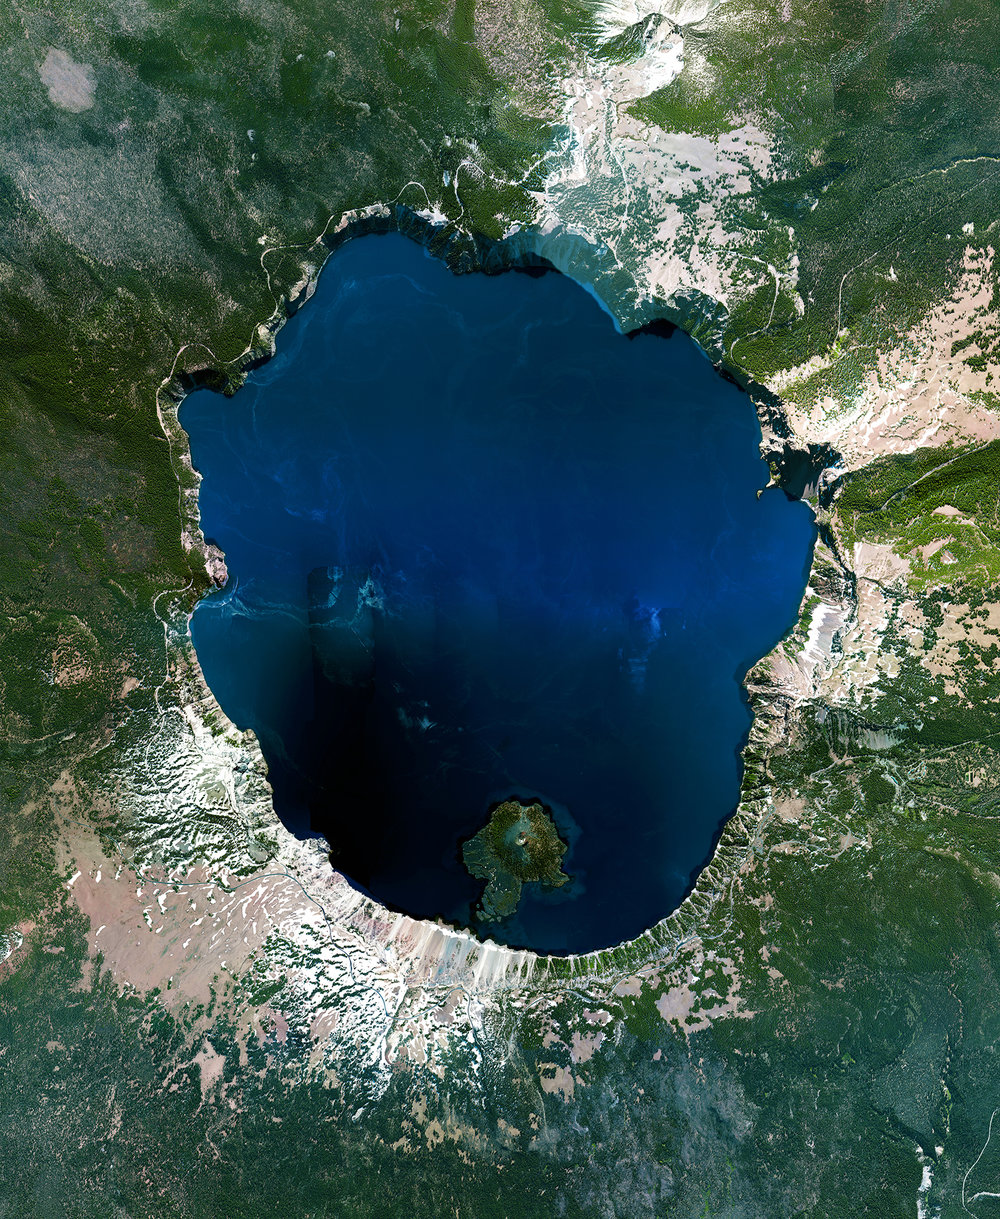 5/27/2017 Crater Lake Fort Klamath, Oregon, USA Crater Lake is located in Fort Klamath, Oregon, USA. The awe-inspiring, intense blue water sits in a crater that was formed 7,700 years ago by the collapse of a volcano, Mount Mazama. As no rivers flow into or out of the crater, the evaporation is compensated for by rain and snowfall. At 1,943 feet (592 meters), the lake is the deepest in the United States.